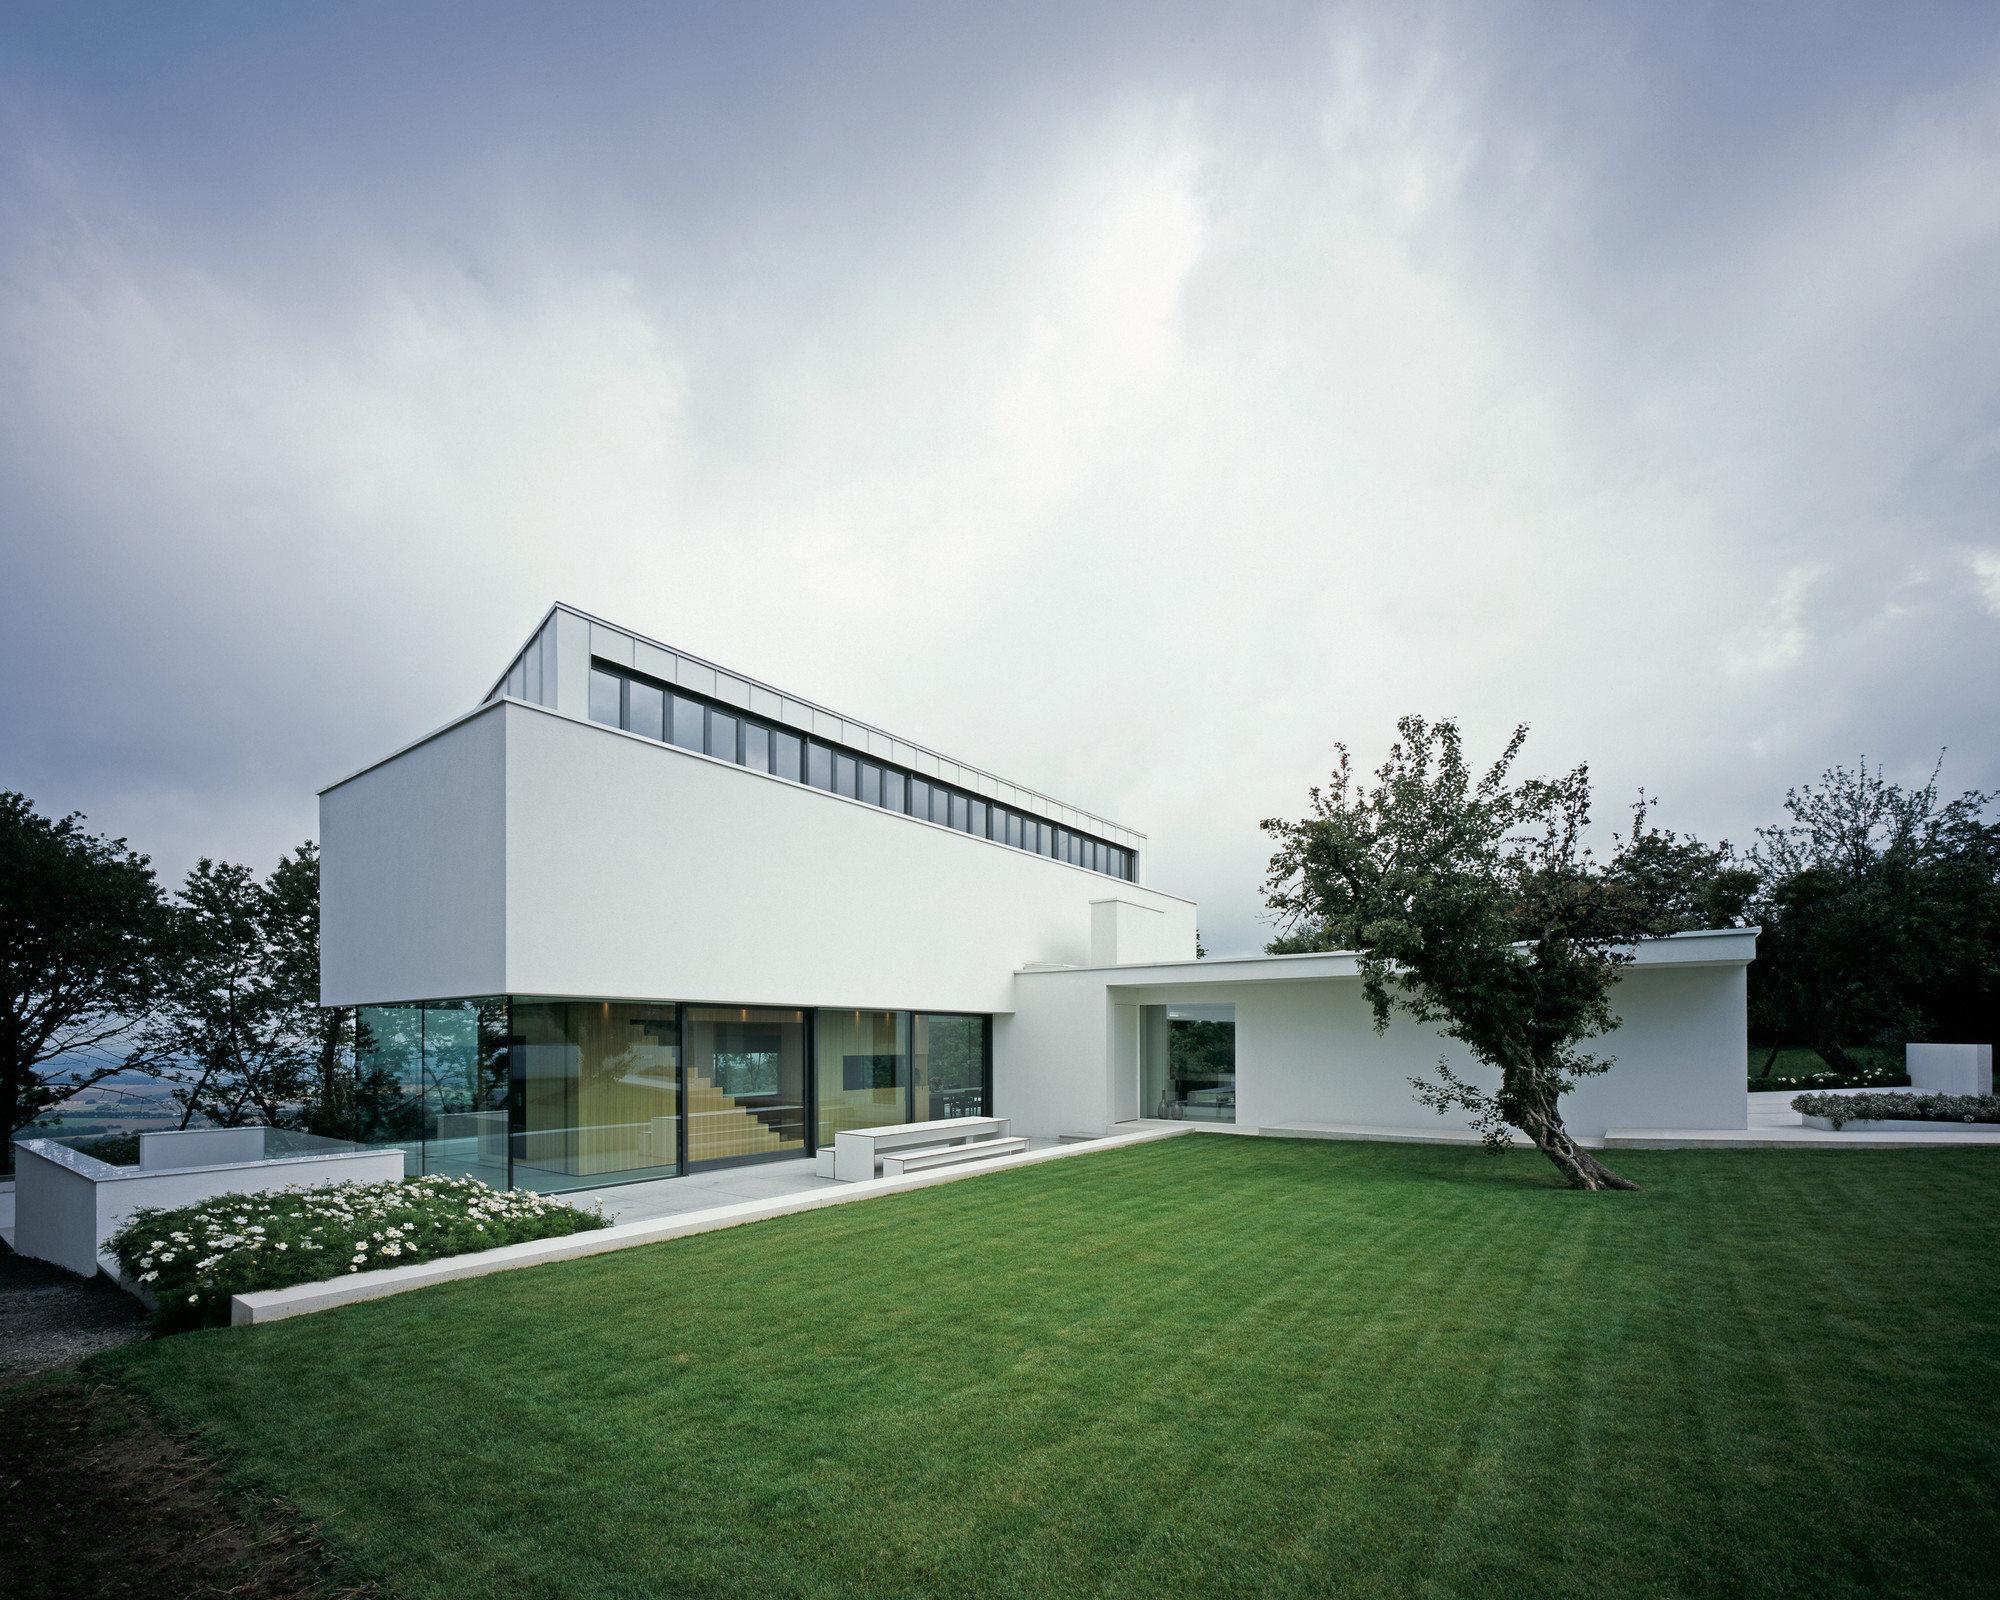 52058a68e8e44e4d0800002f House P Philipp Architekten Photo on Modern House Design